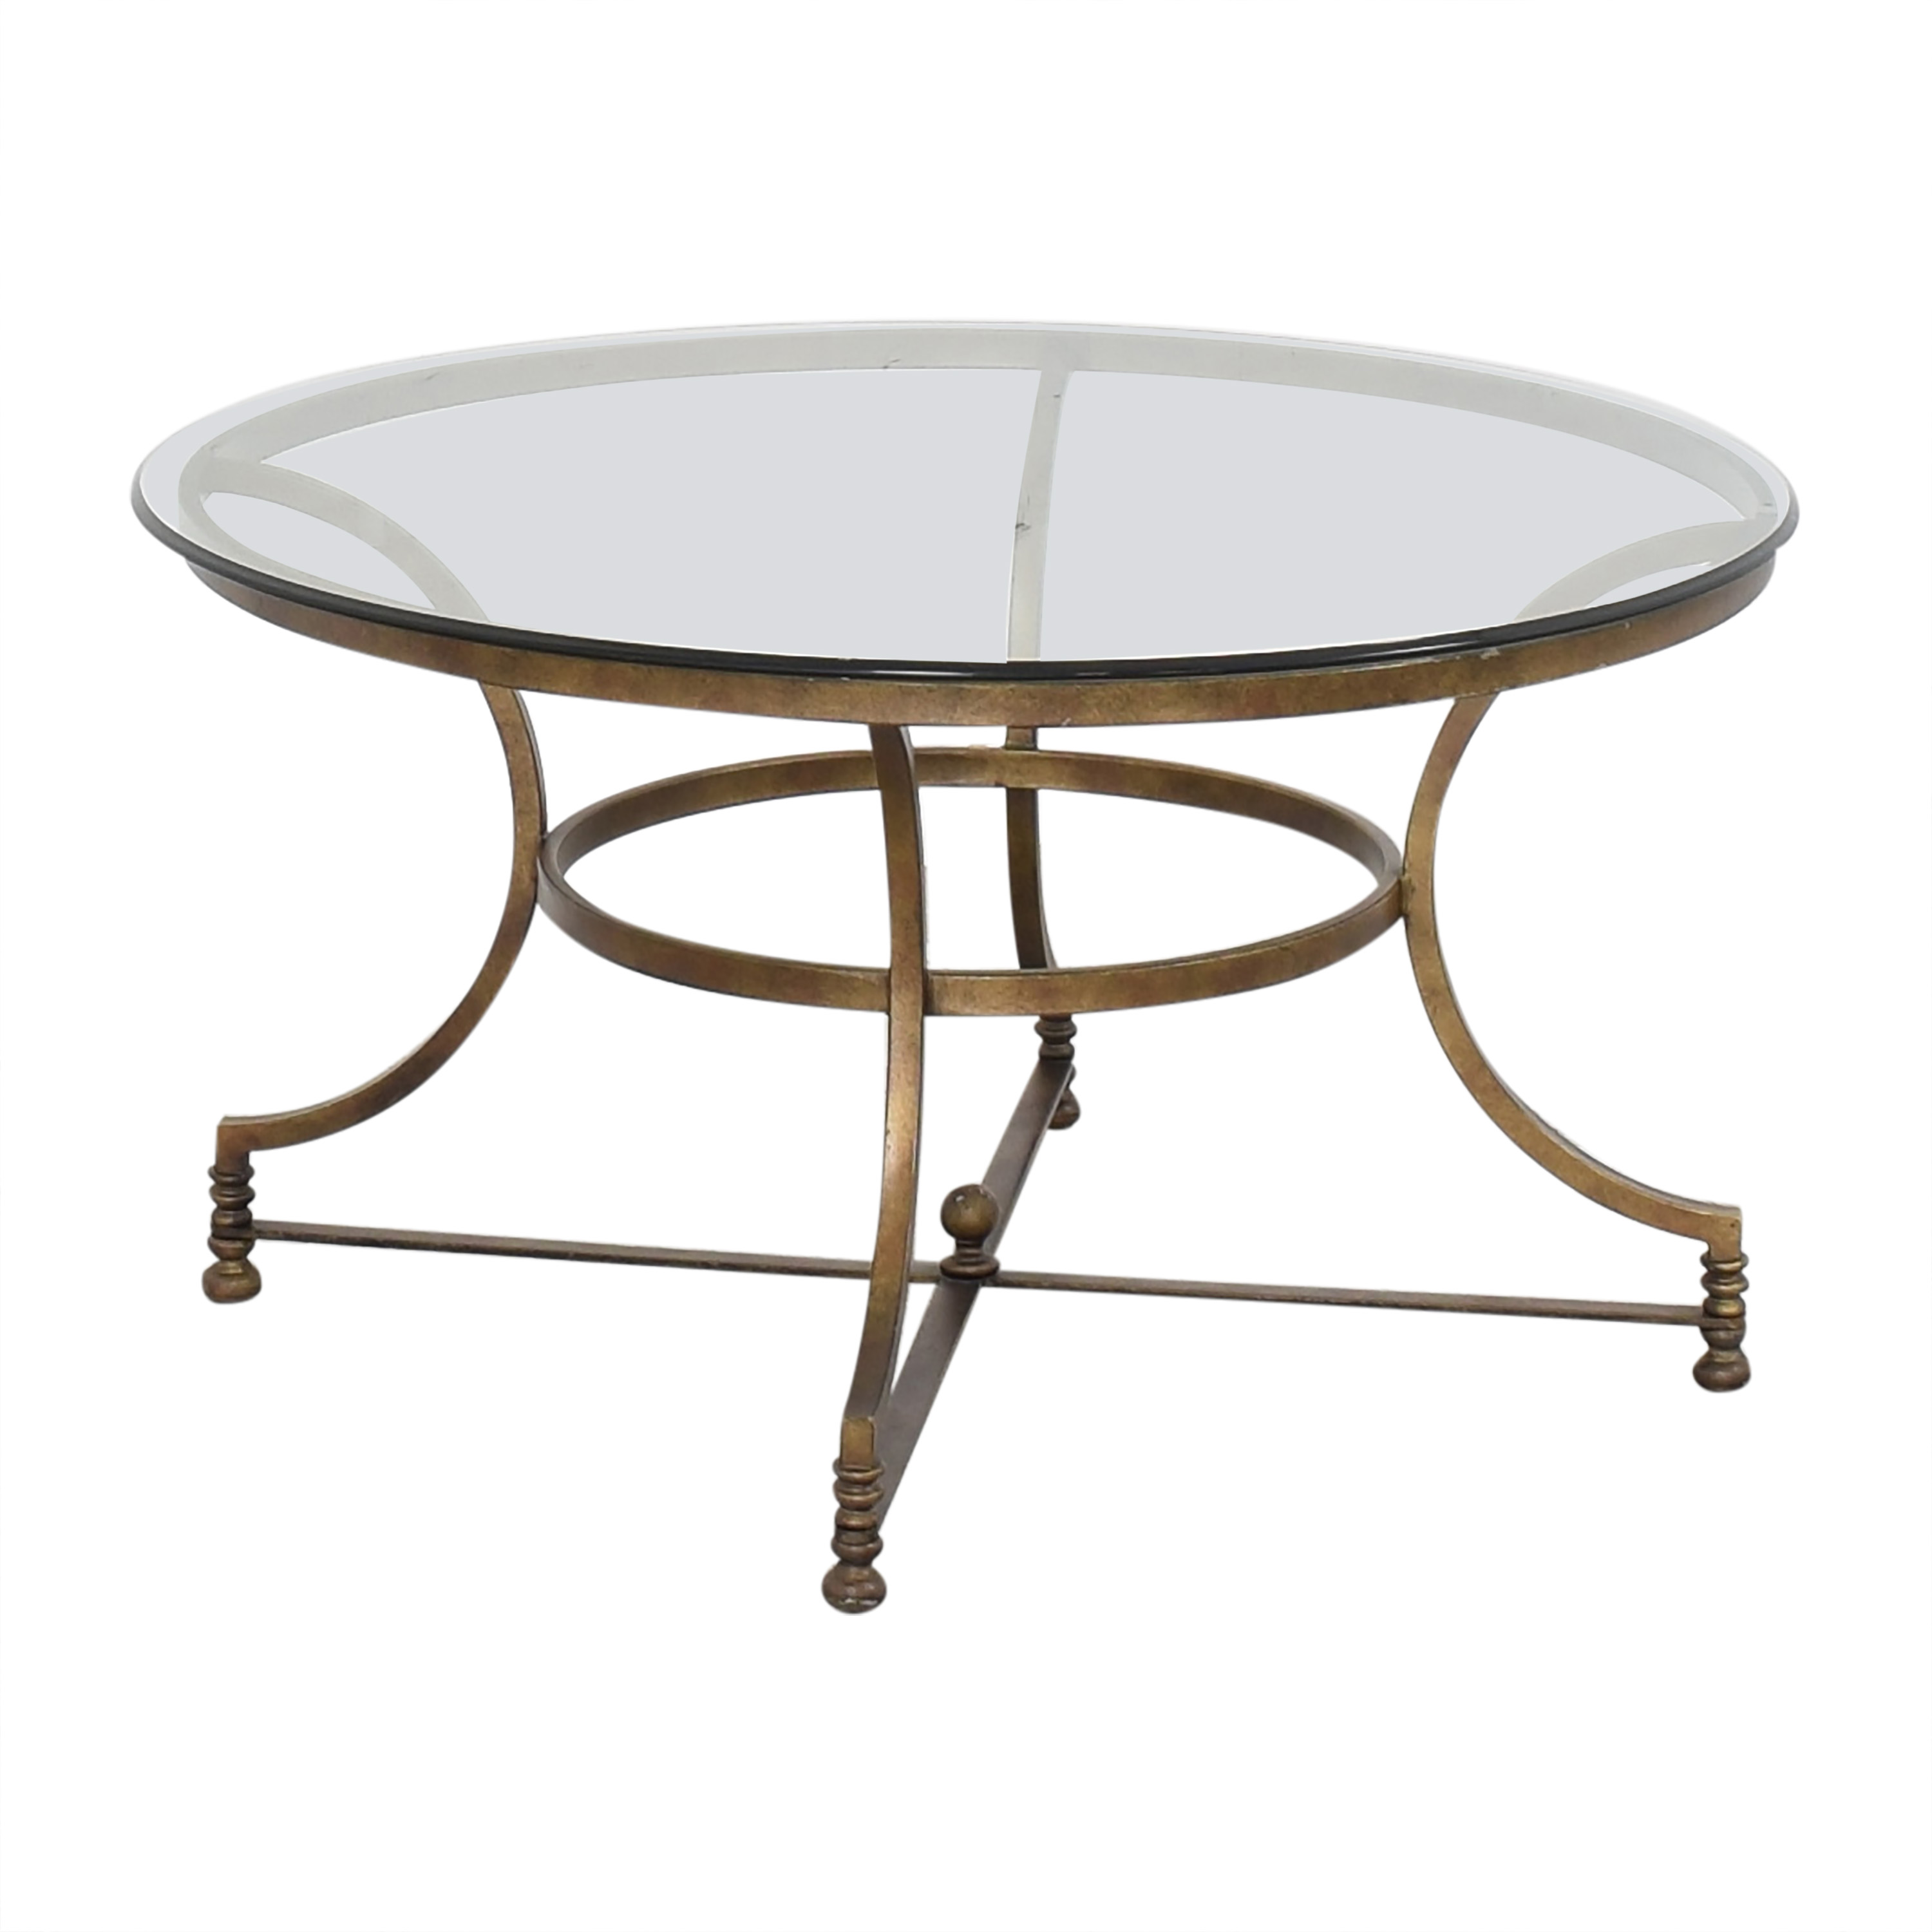 Thomasville Round Glass Coffee Table Coffee Tables